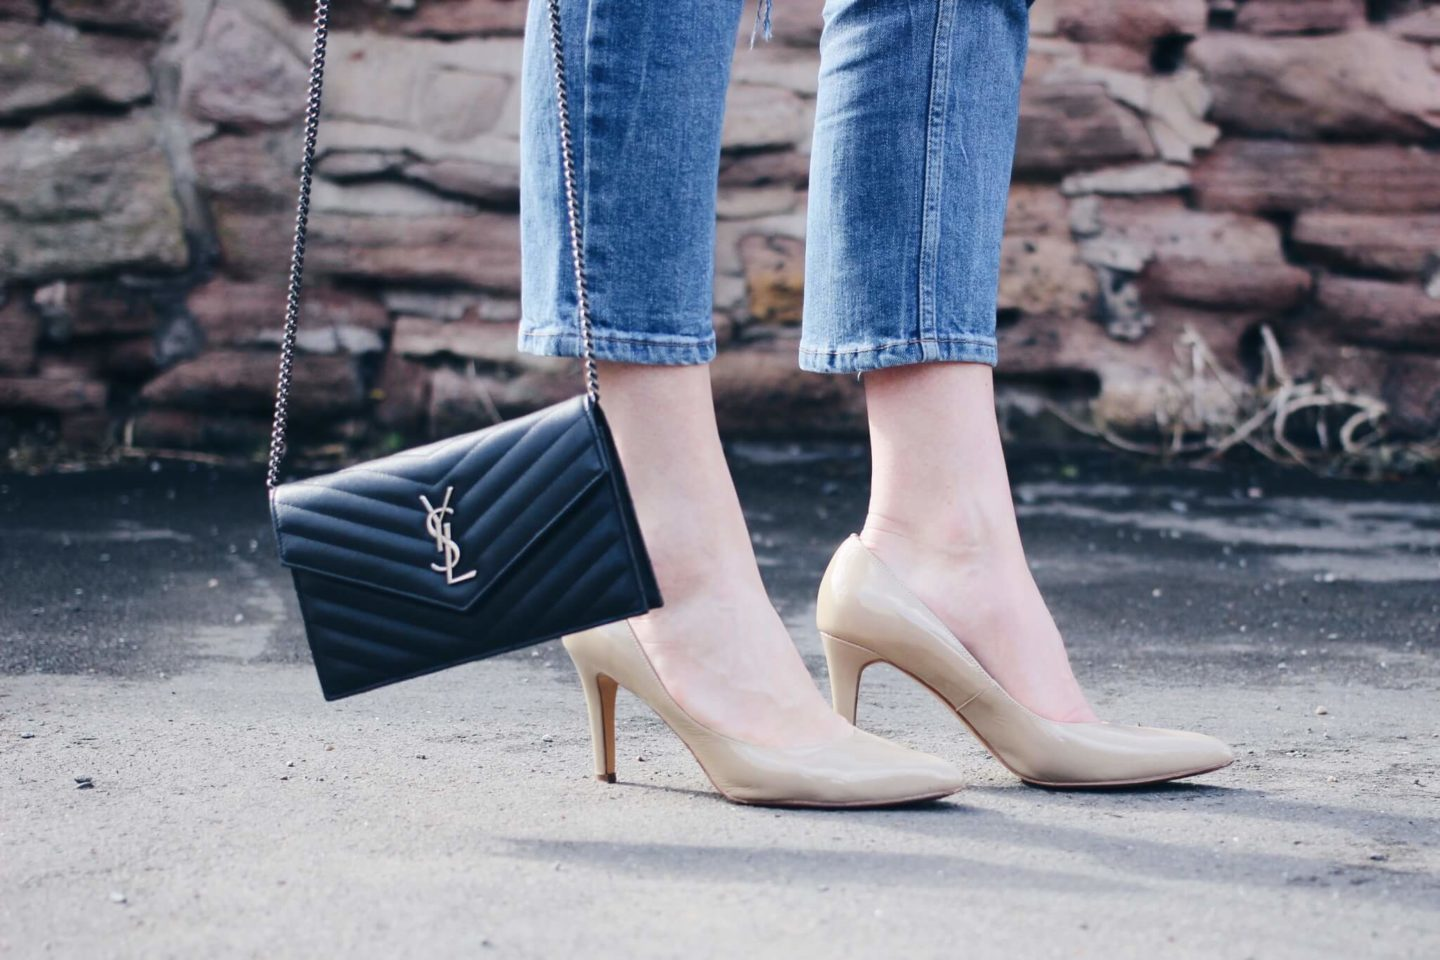 YSL Wallet on a chain saint Laurent Bag on UK FashionBlog Lurchhoundloves